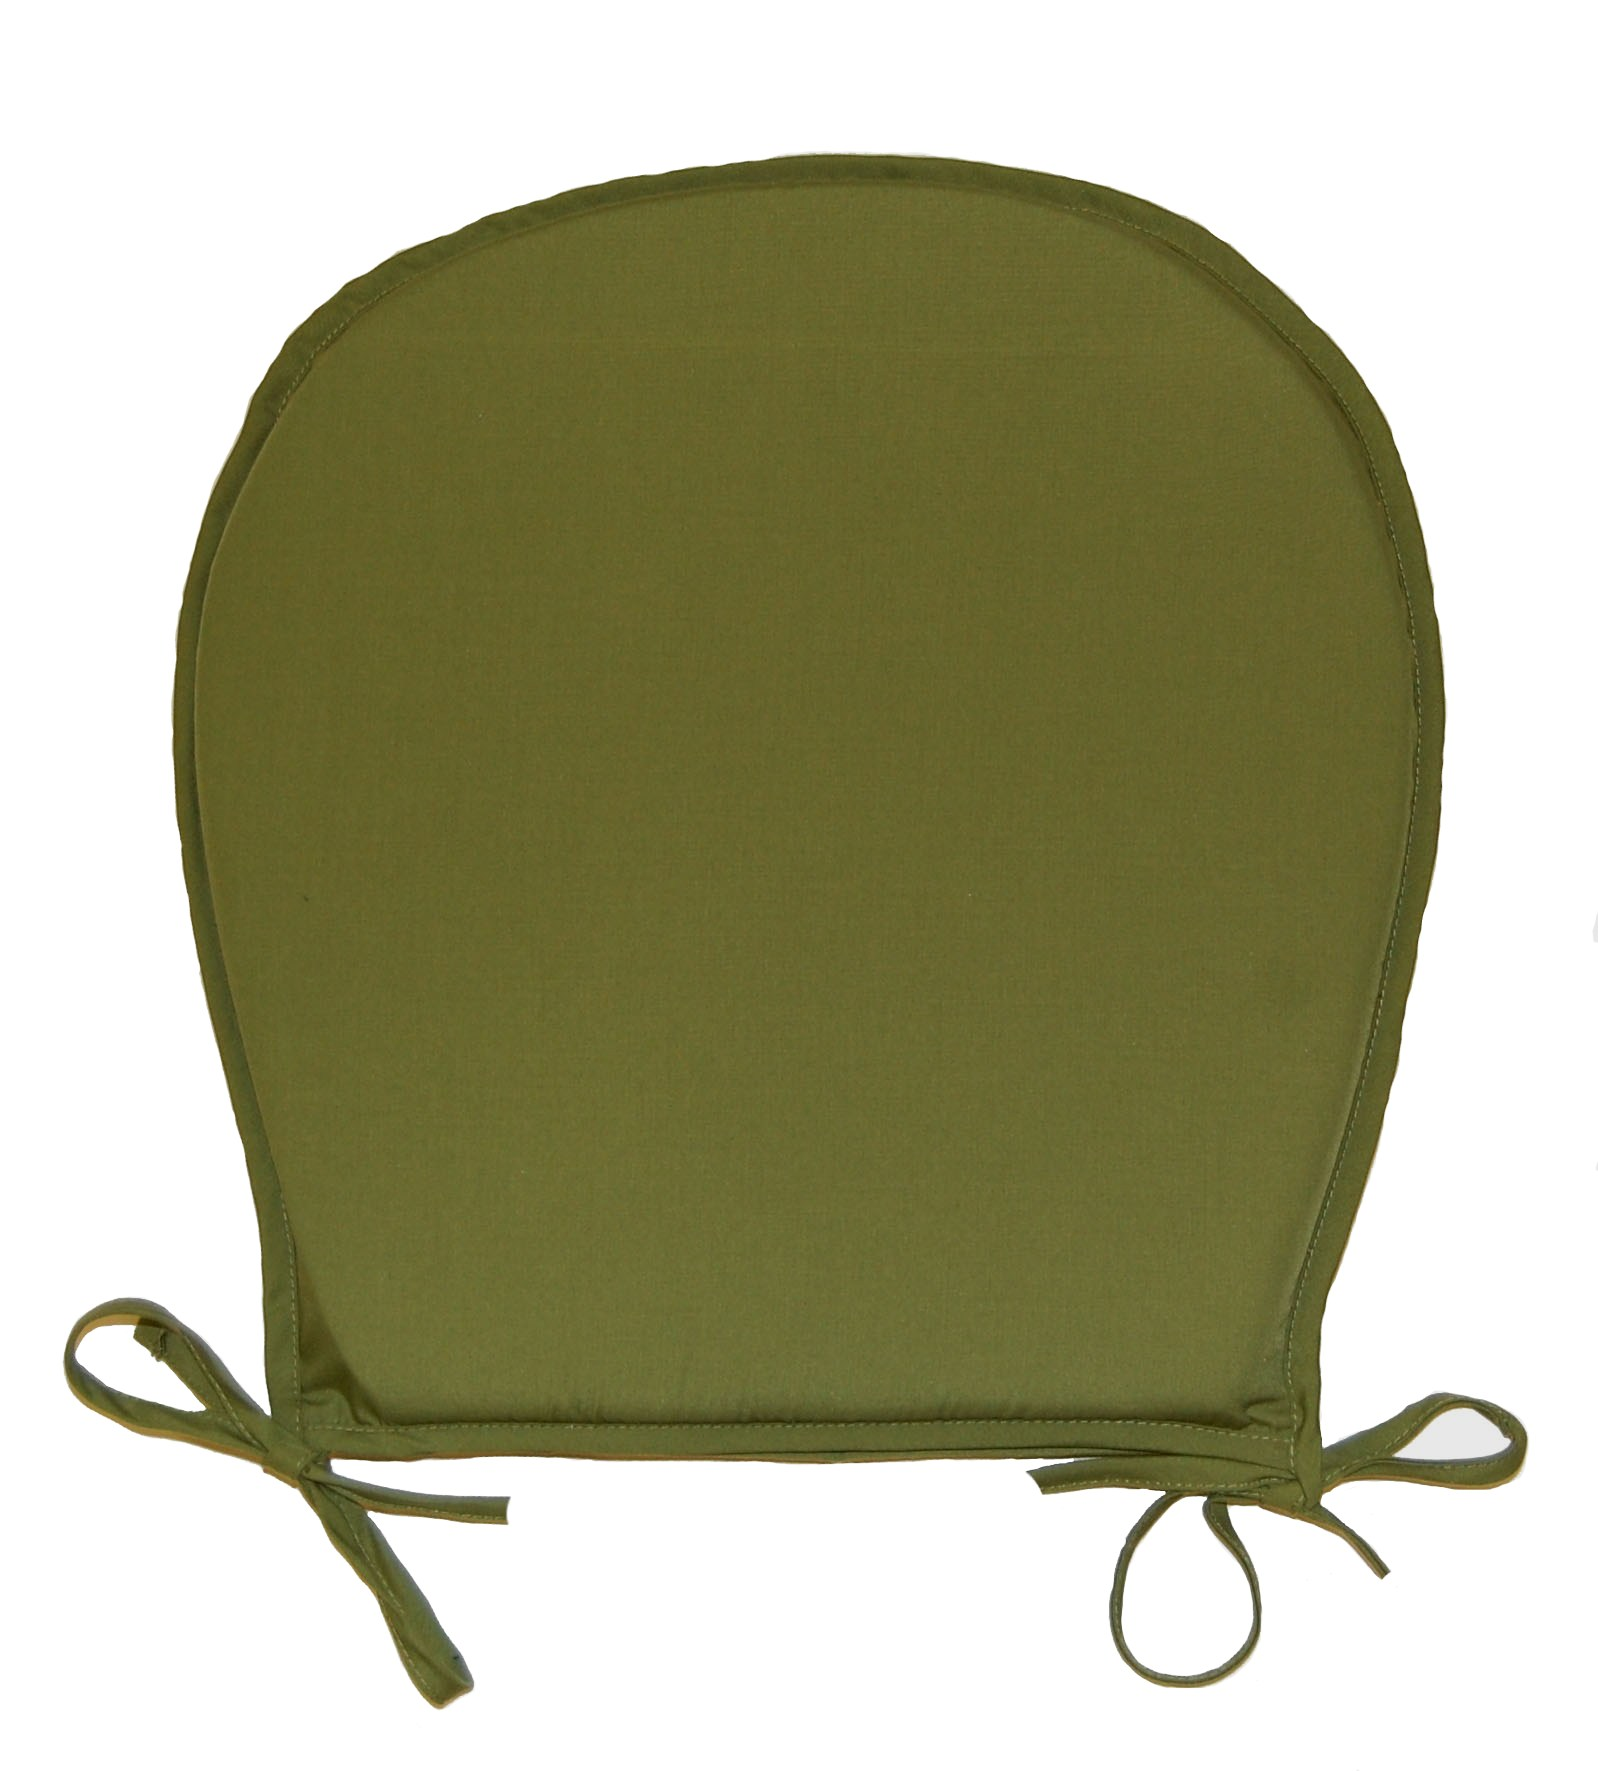 Plastic seat covers for kitchen chairs photo - 1